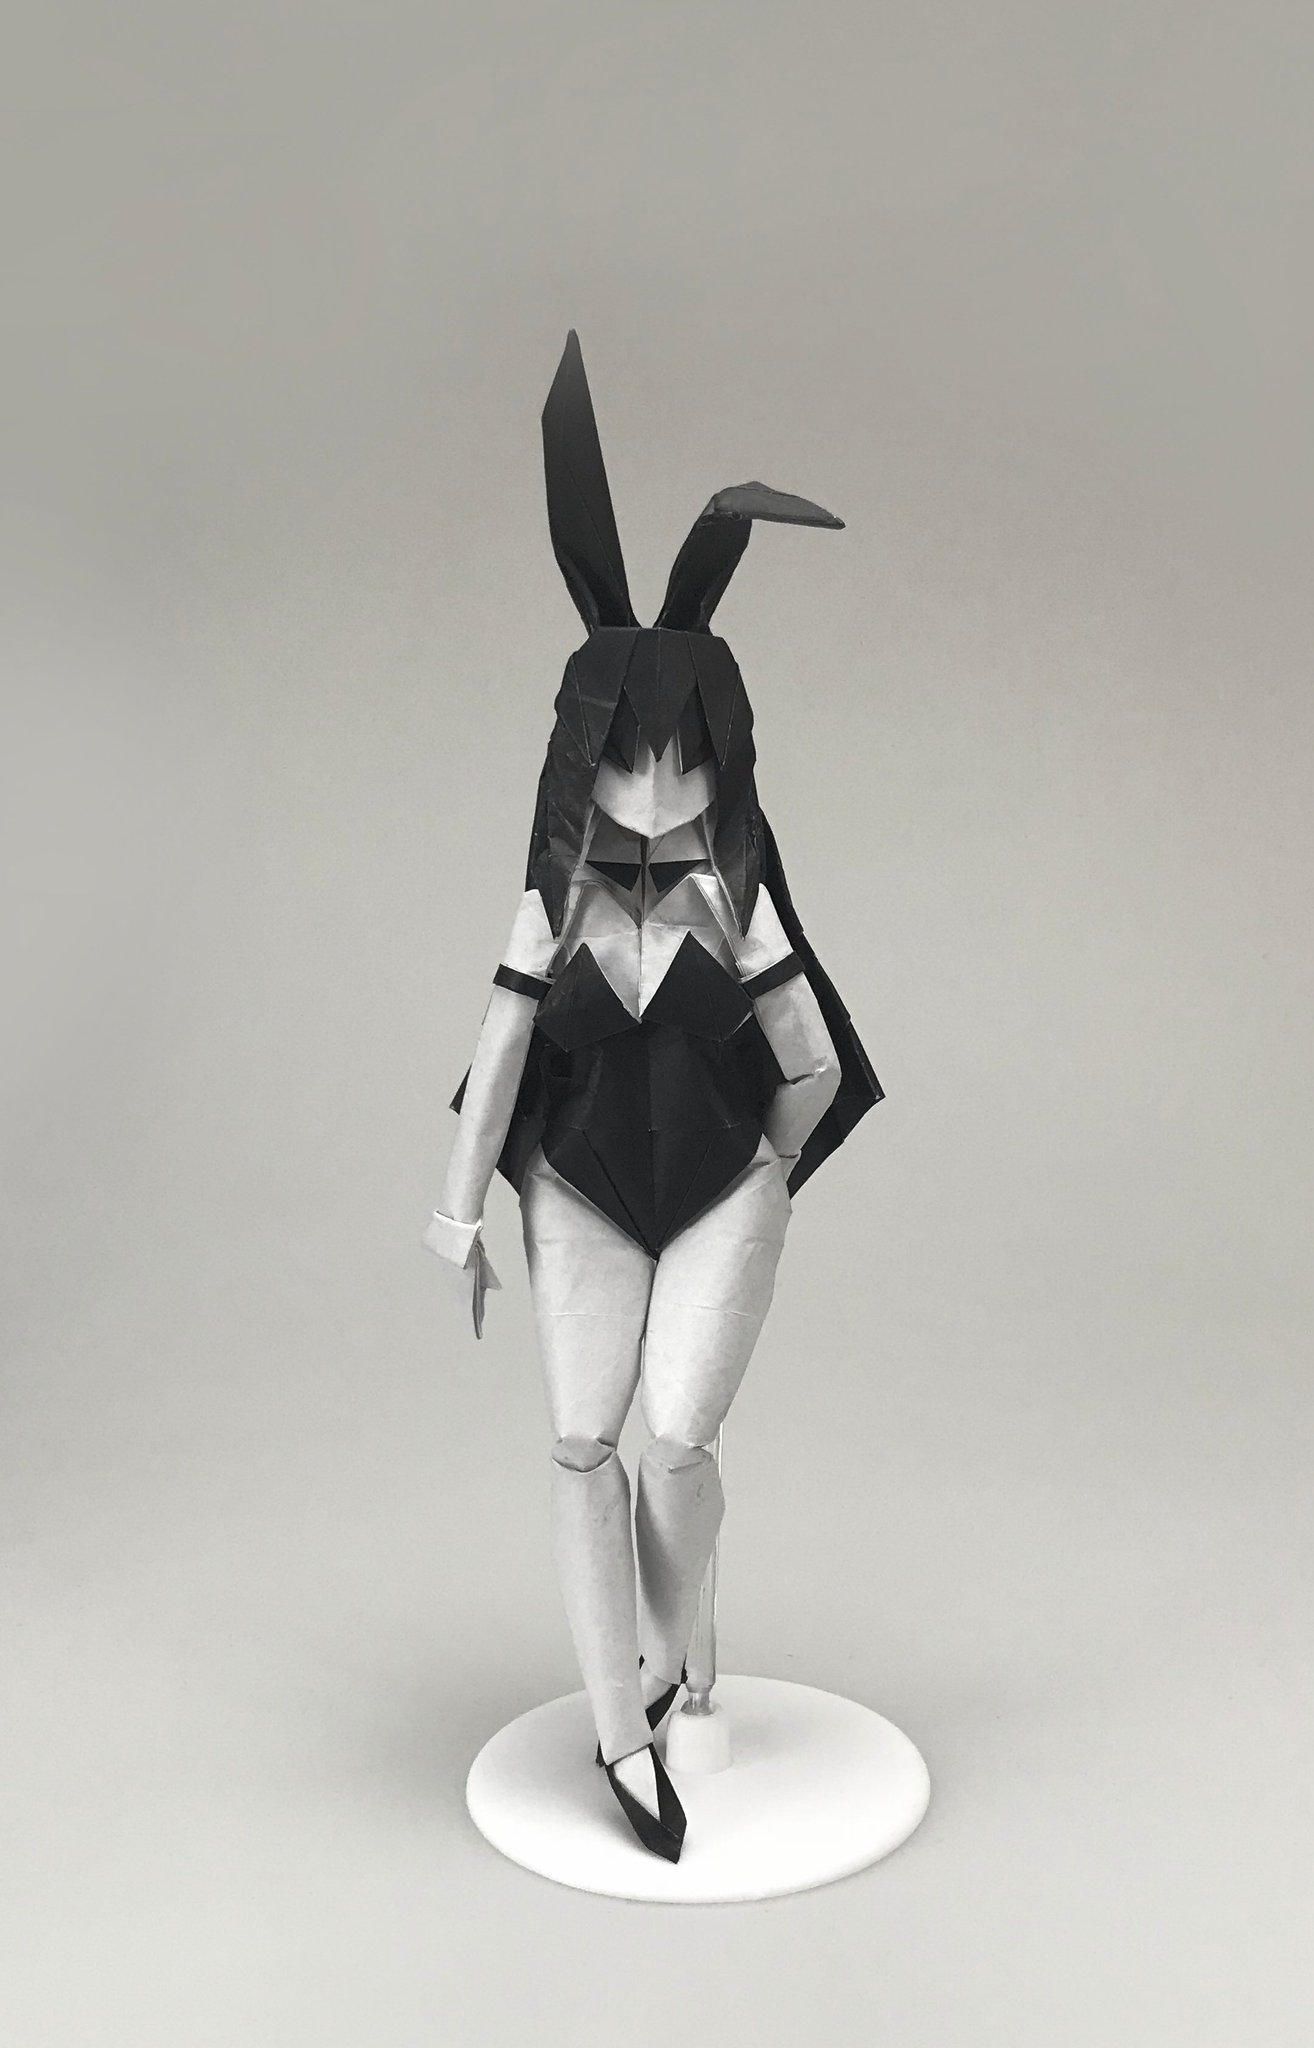 """Ob_陳曉 on Twitter: """"Bunny Girl. 10cm*10cm craft paper. Could be"""